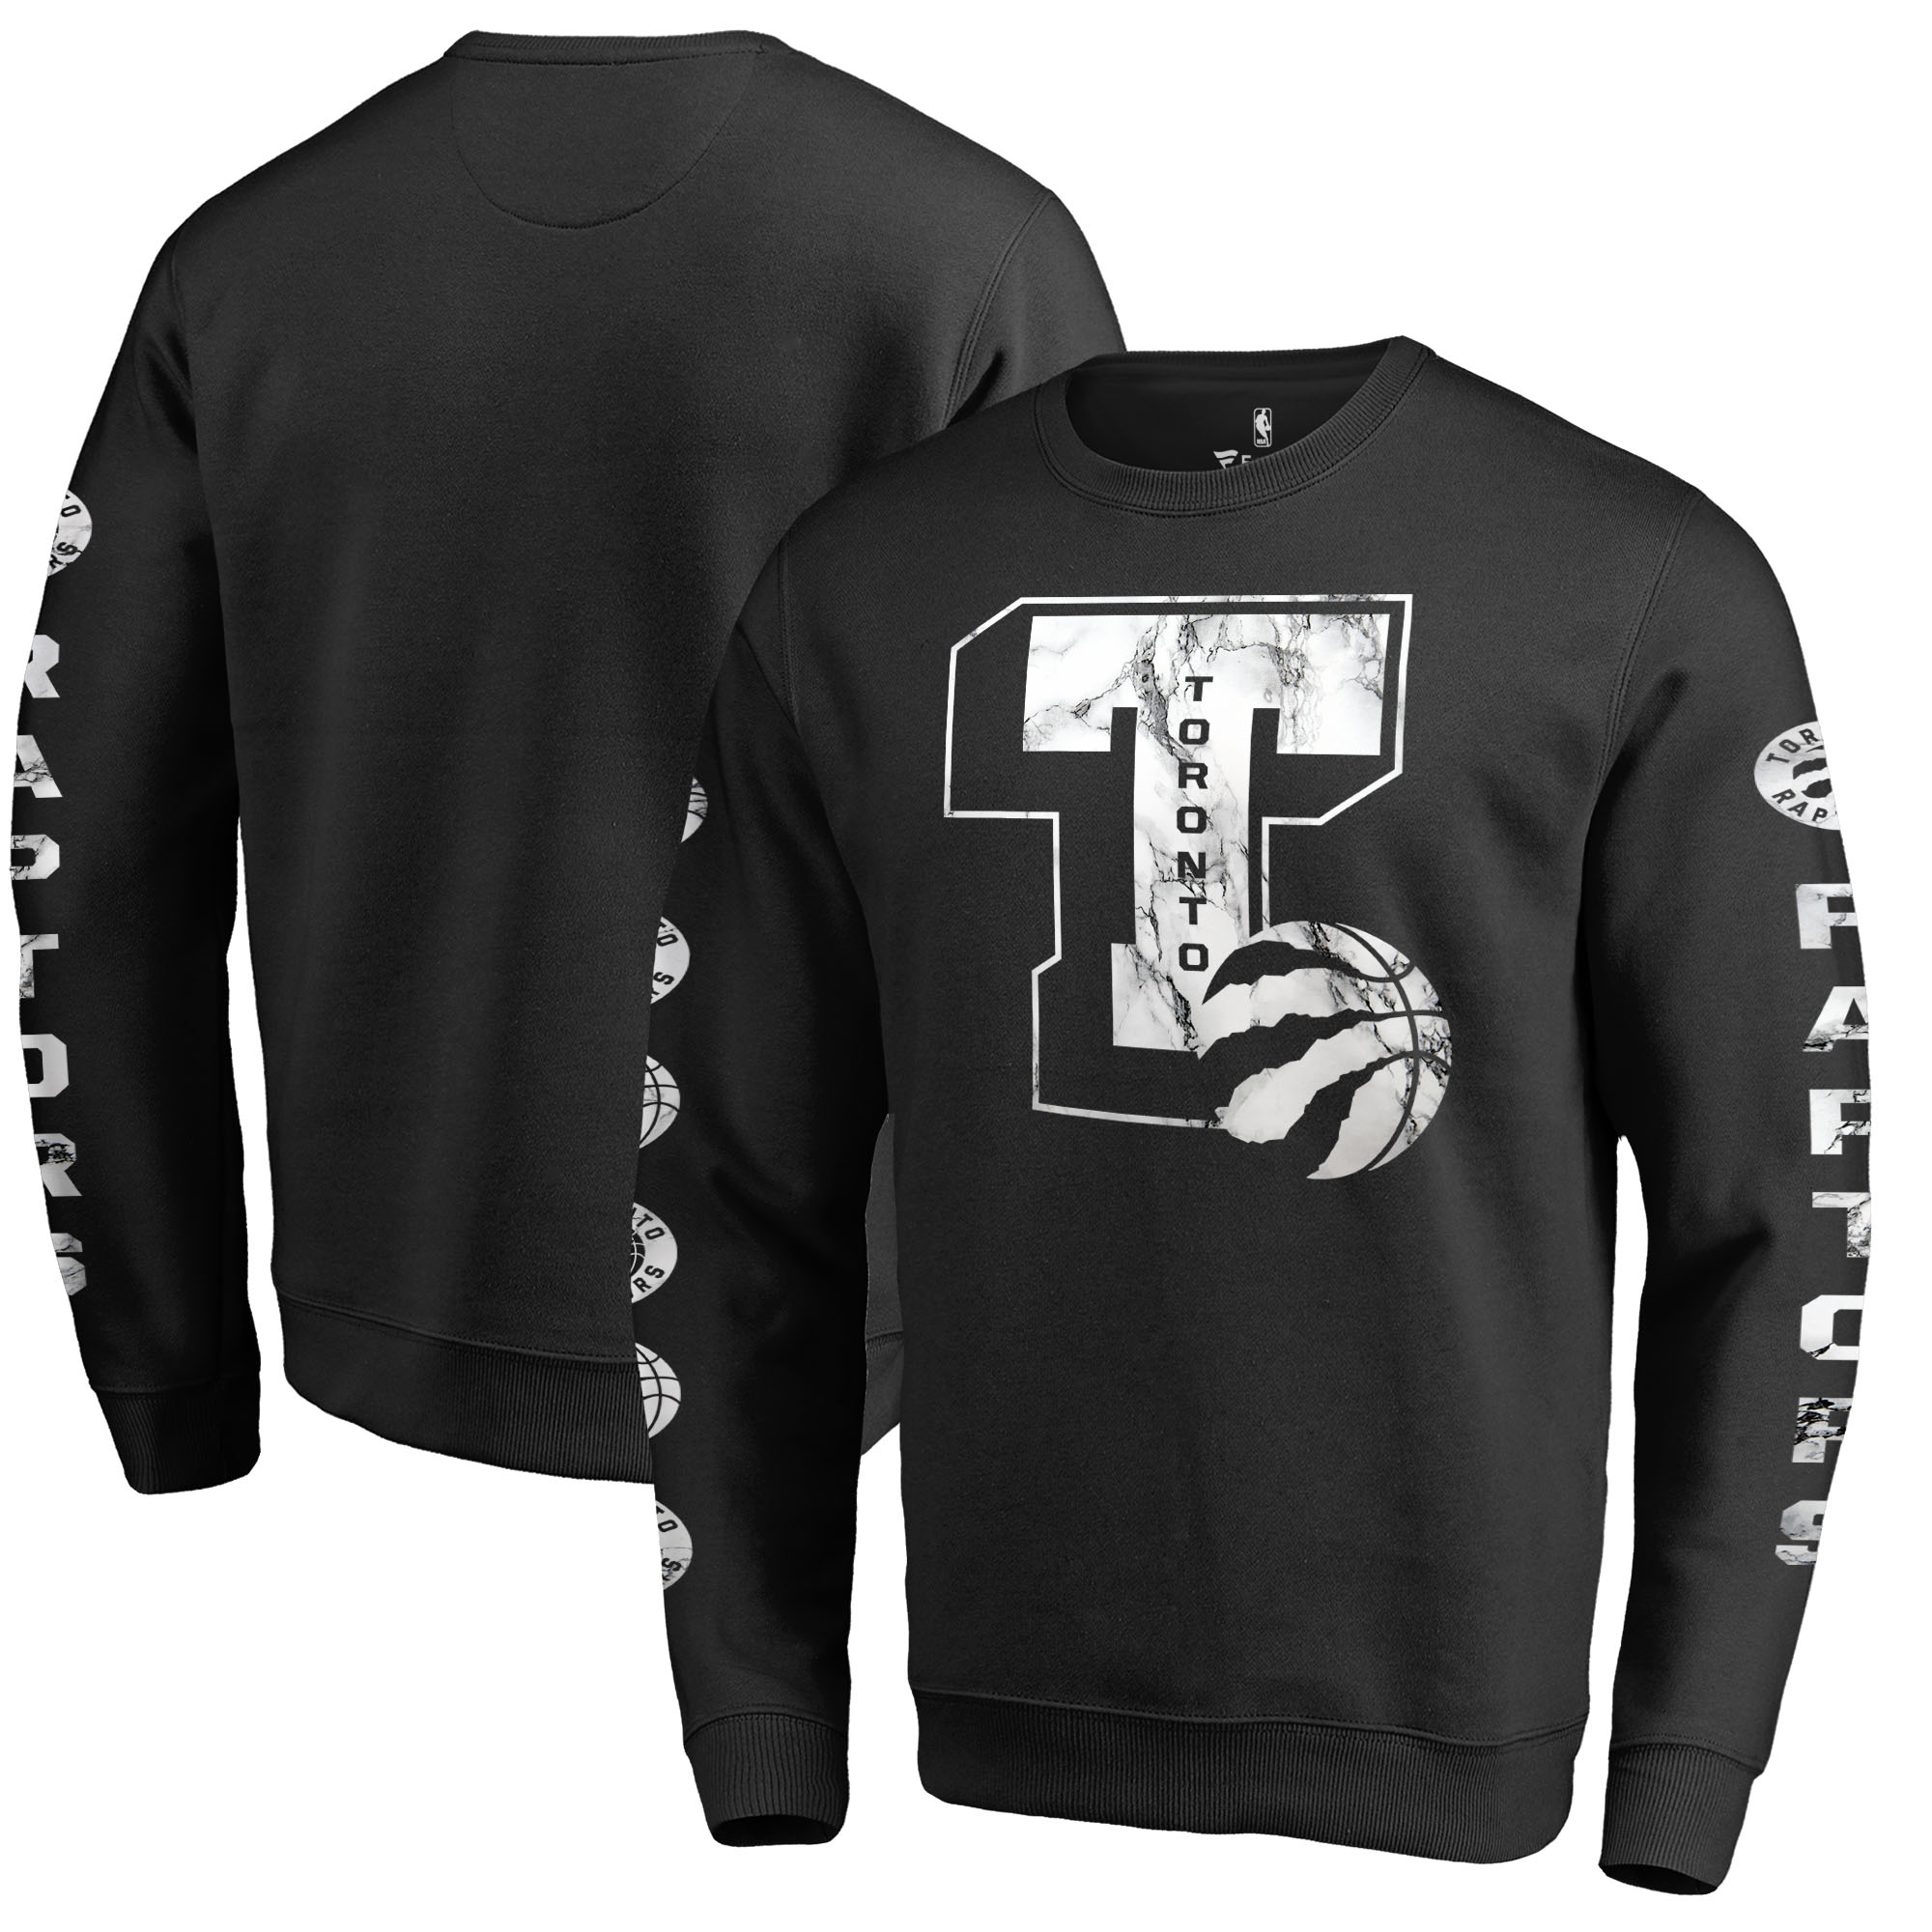 Toronto Raptors Fanatics Branded Letterman Fleece Crew Neck Sweatshirt - Black